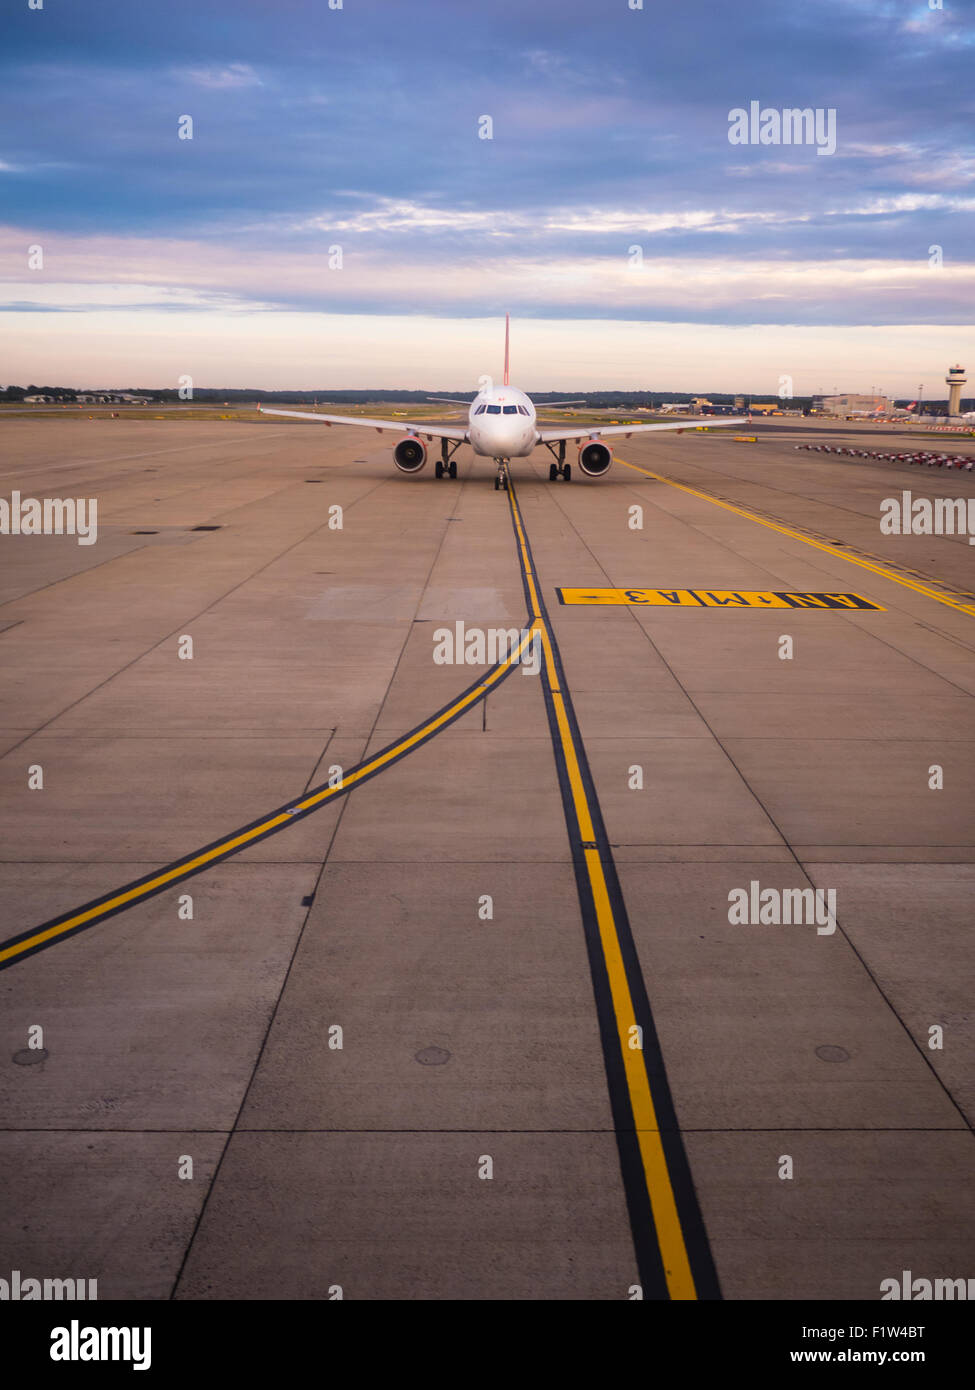 An Easyjet aircraft taxying to the Runway of Gatwick Airport, London, England - Stock Image